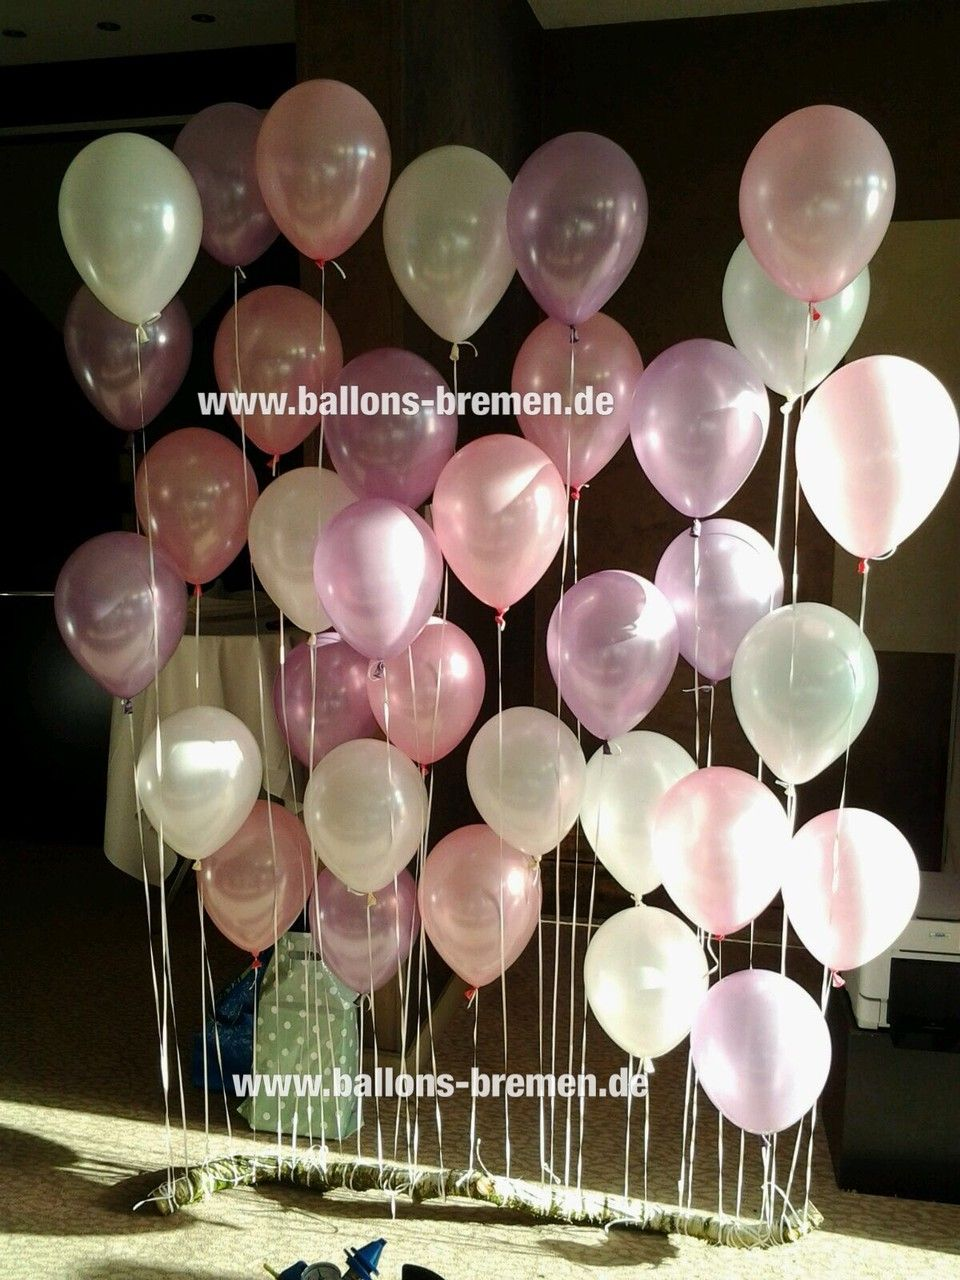 Fotohintergrund Fur Hochzeit Aus Ballons Photobackground Wedding